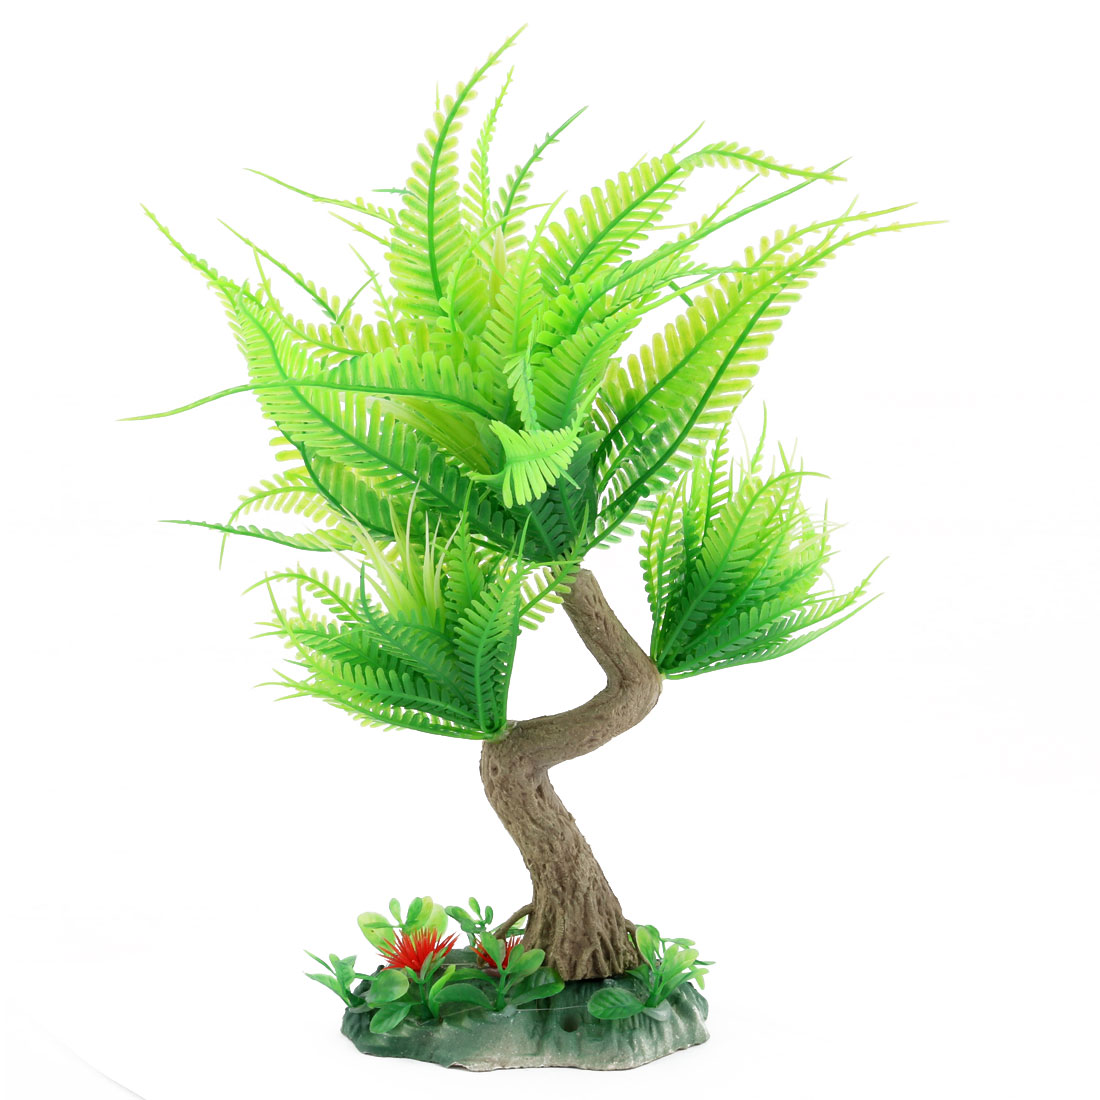 Home Office Fish Tank Aquarium Tree Designed Underwater Ornament Plant Green